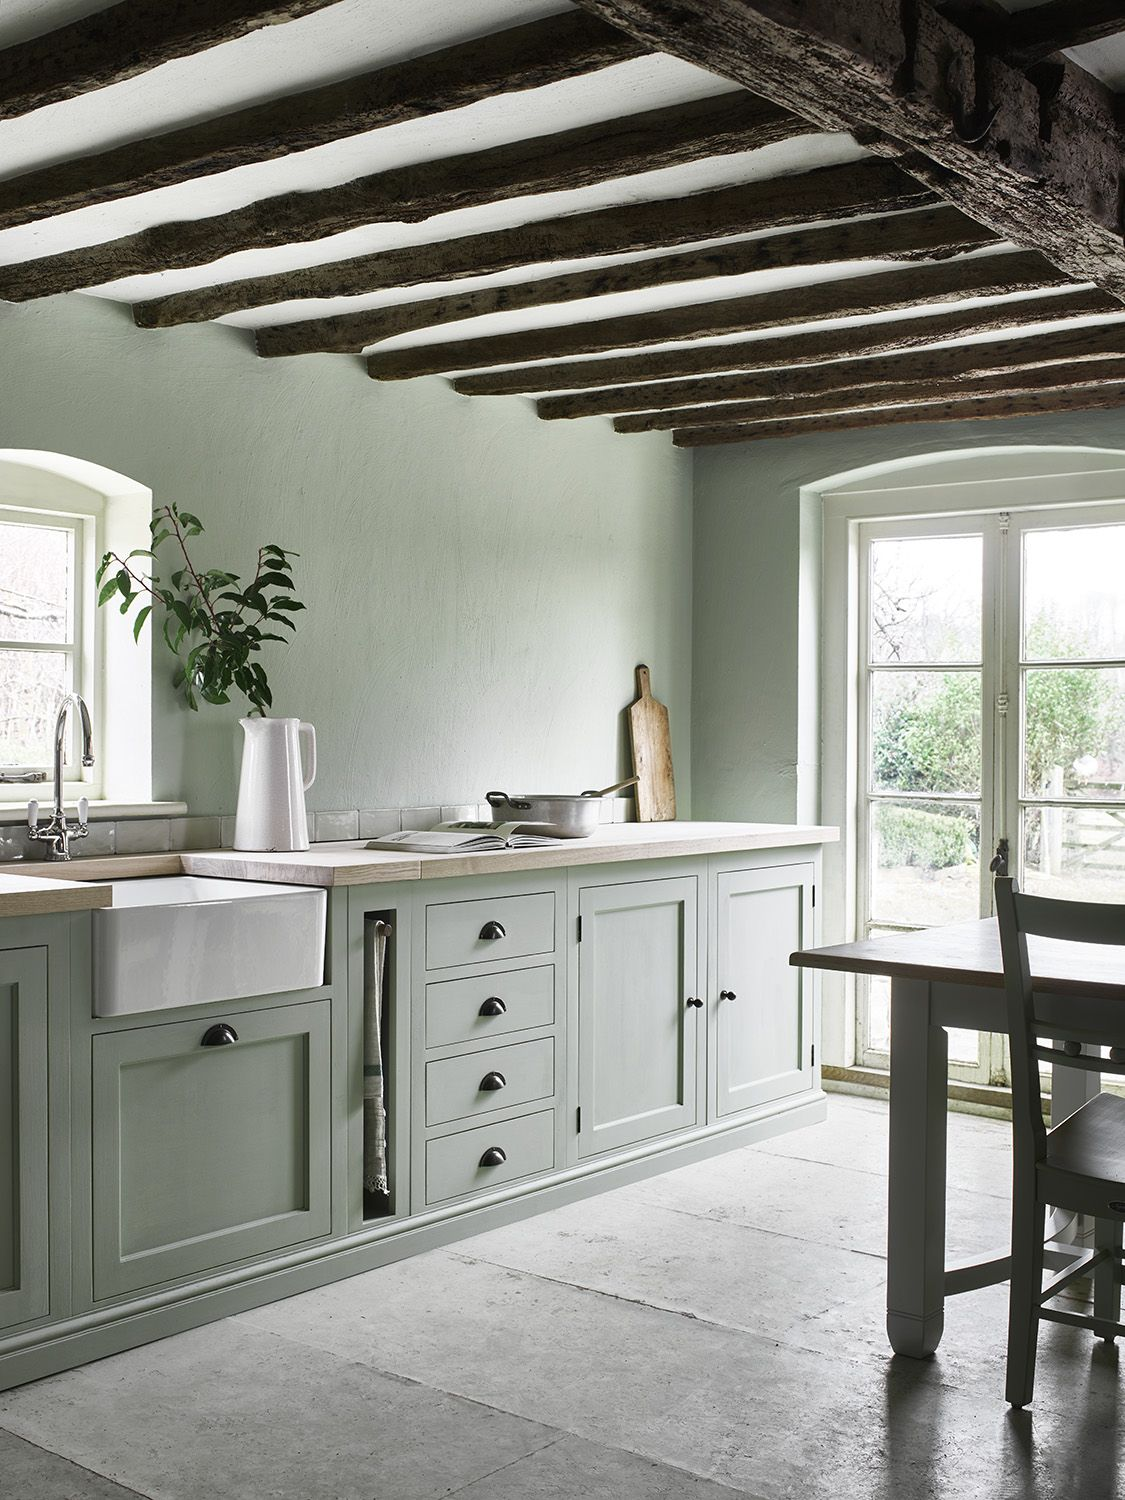 Paint Color Neptune Henley Kitchen Hand Painted In Sage Cottage Beams We Green Interiors